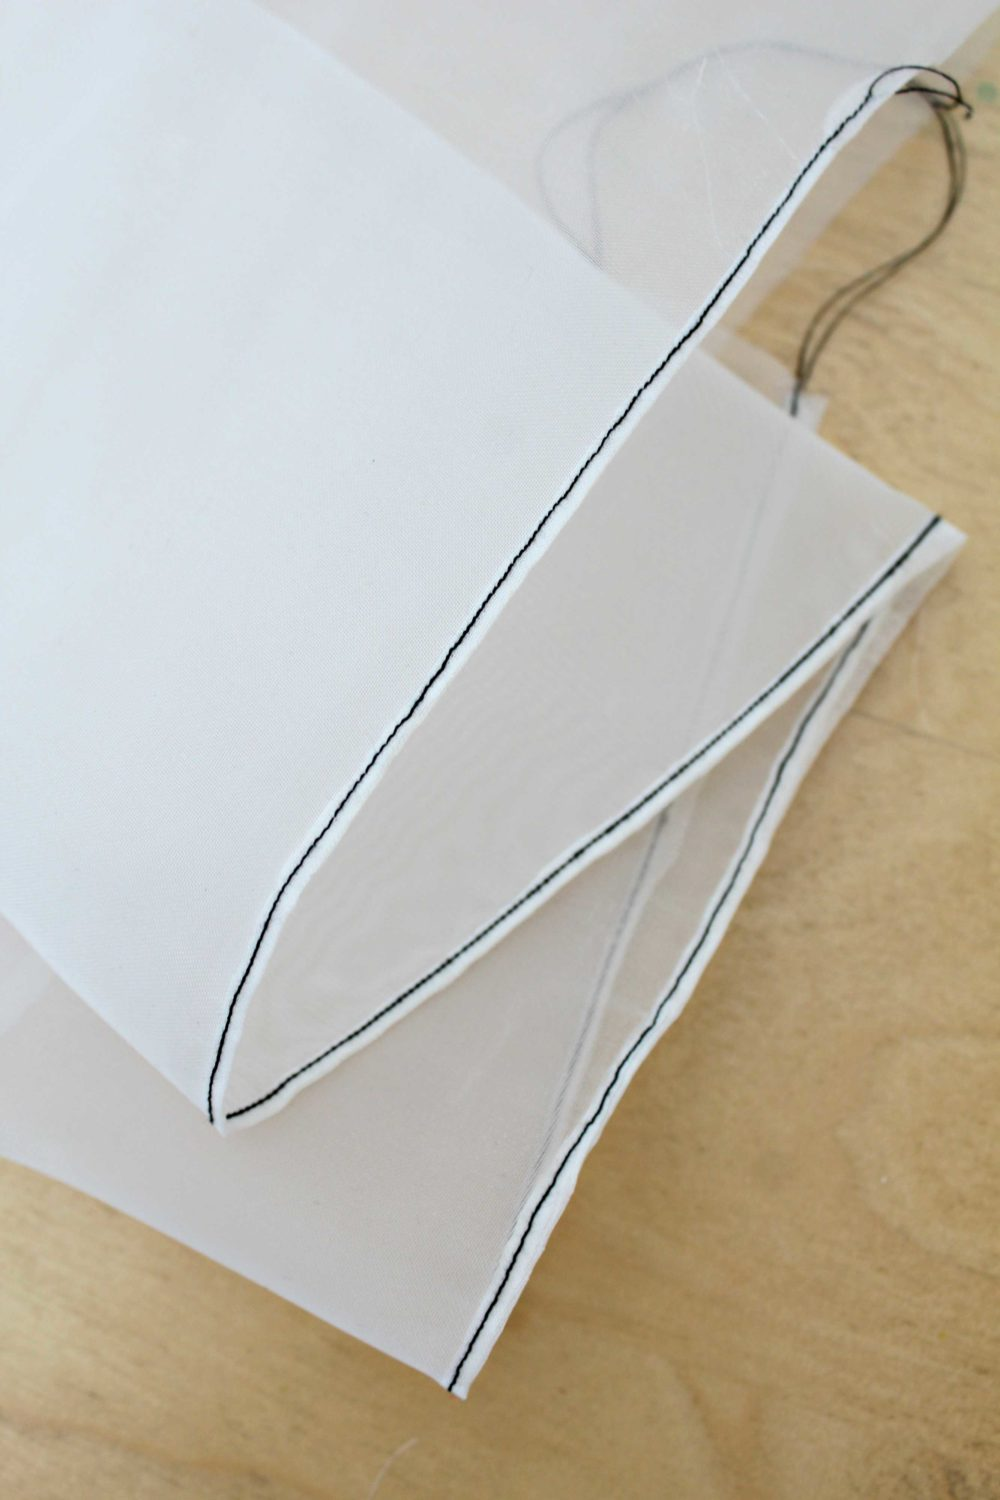 Piece of fabric with a rolled hem showing how to sew a rolled hem